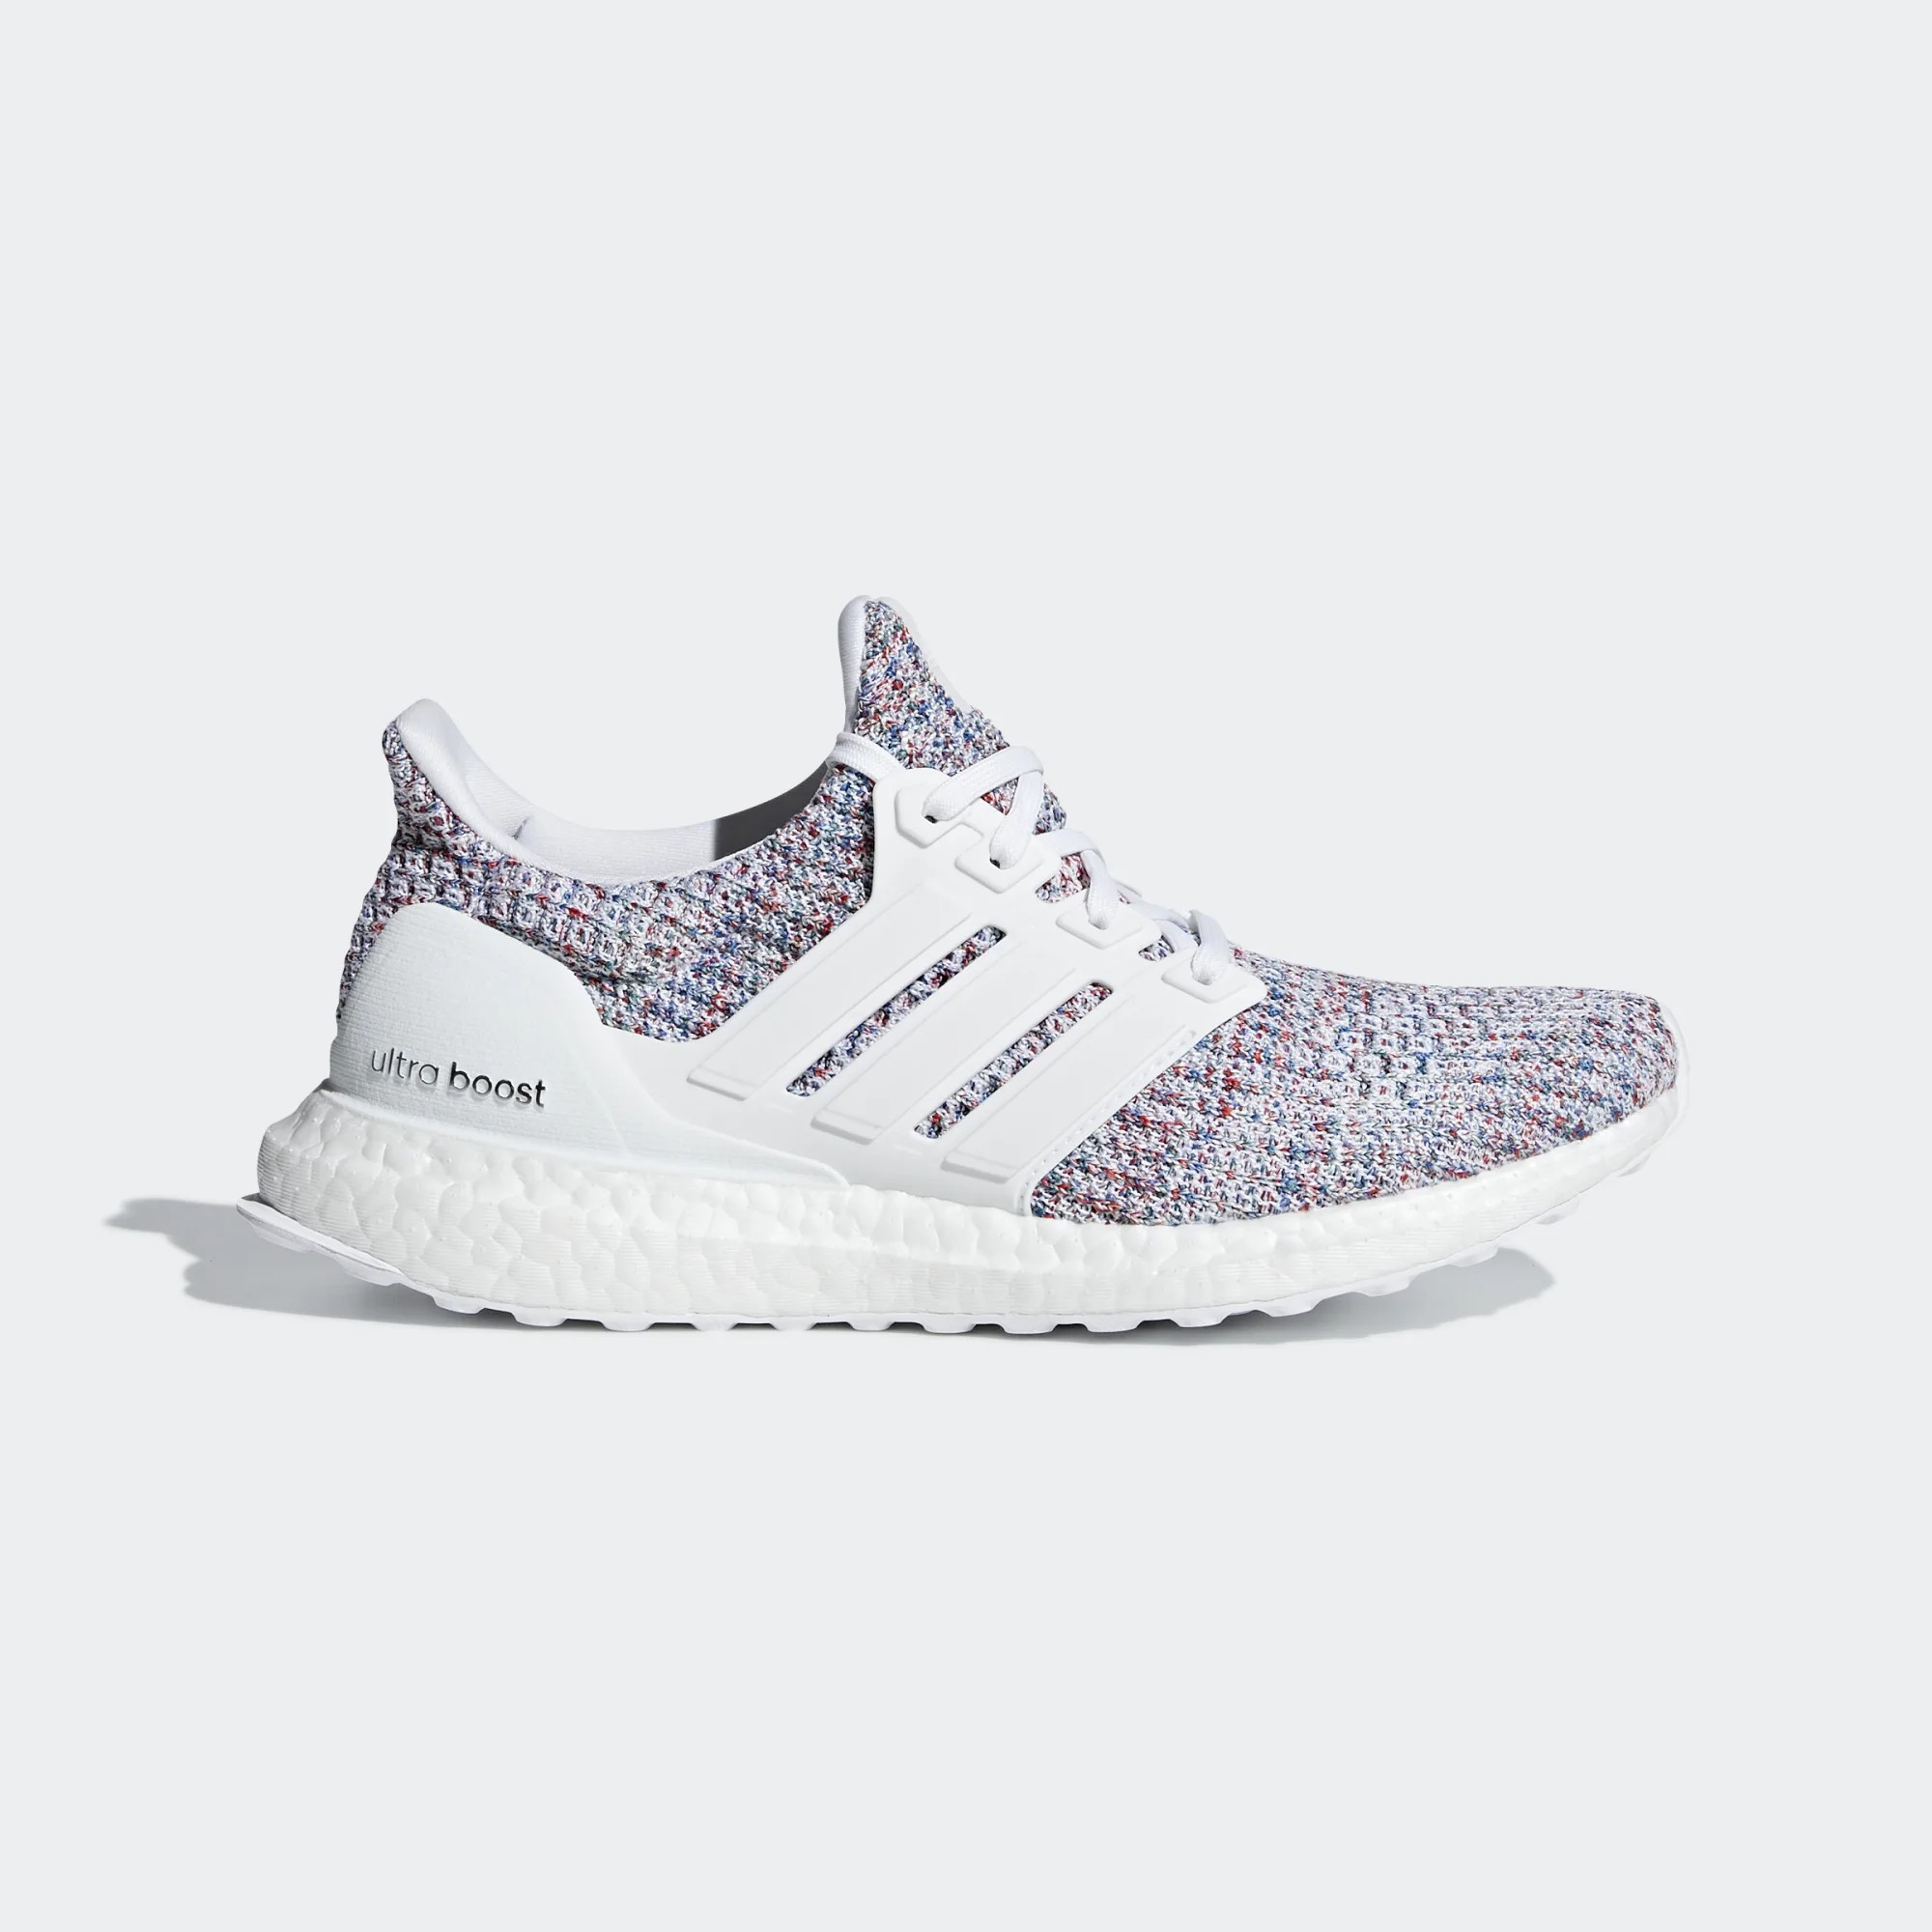 adidas DB3211 Ultraboost Womens Running Shoe White/White